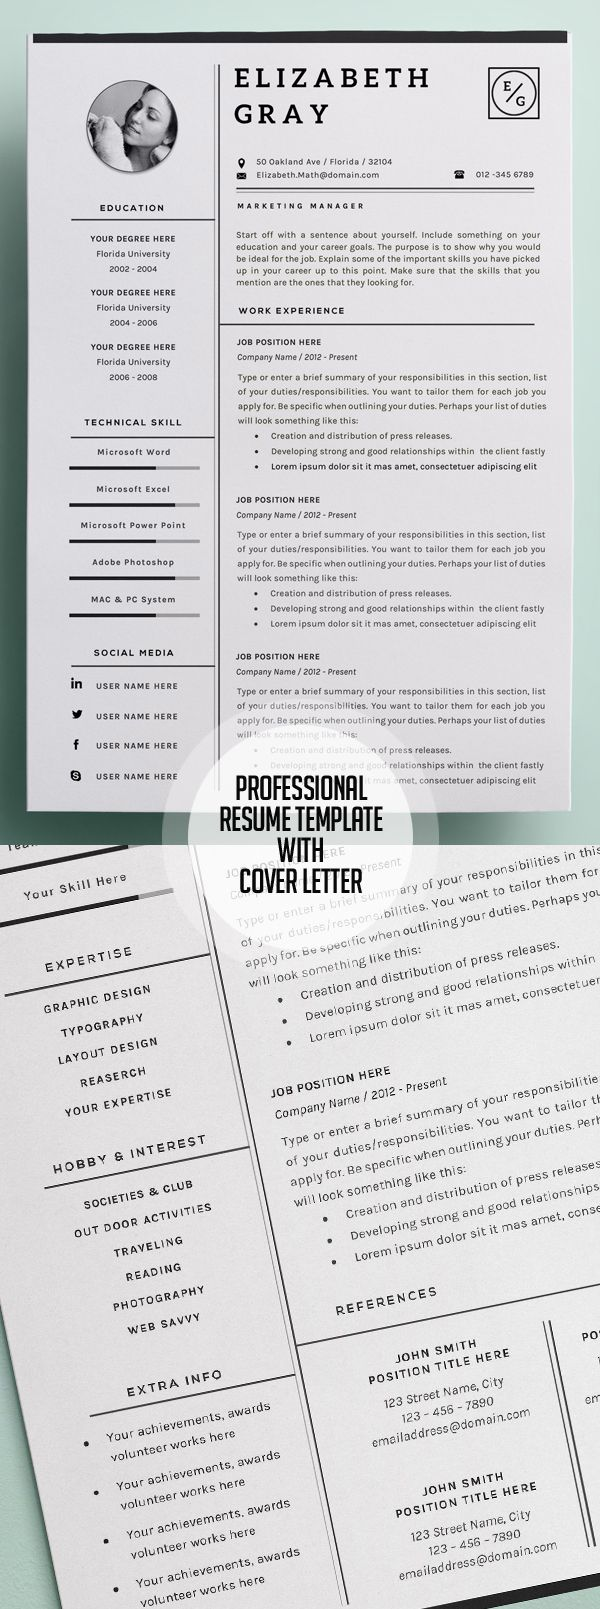 Opposenewapstandardsus  Unique  Resume Ideas On Pinterest  Resume Resume Templates And  With Heavenly Professional And Modern Resume Template With Page Cover Cvtemplate With Astonishing Wound Care Nurse Resume Also Resume For A Highschool Student With No Experience In Addition How Resumes Should Look And Free Resume Example As Well As Resume Tips Objective Additionally Manicurist Resume From Pinterestcom With Opposenewapstandardsus  Heavenly  Resume Ideas On Pinterest  Resume Resume Templates And  With Astonishing Professional And Modern Resume Template With Page Cover Cvtemplate And Unique Wound Care Nurse Resume Also Resume For A Highschool Student With No Experience In Addition How Resumes Should Look From Pinterestcom